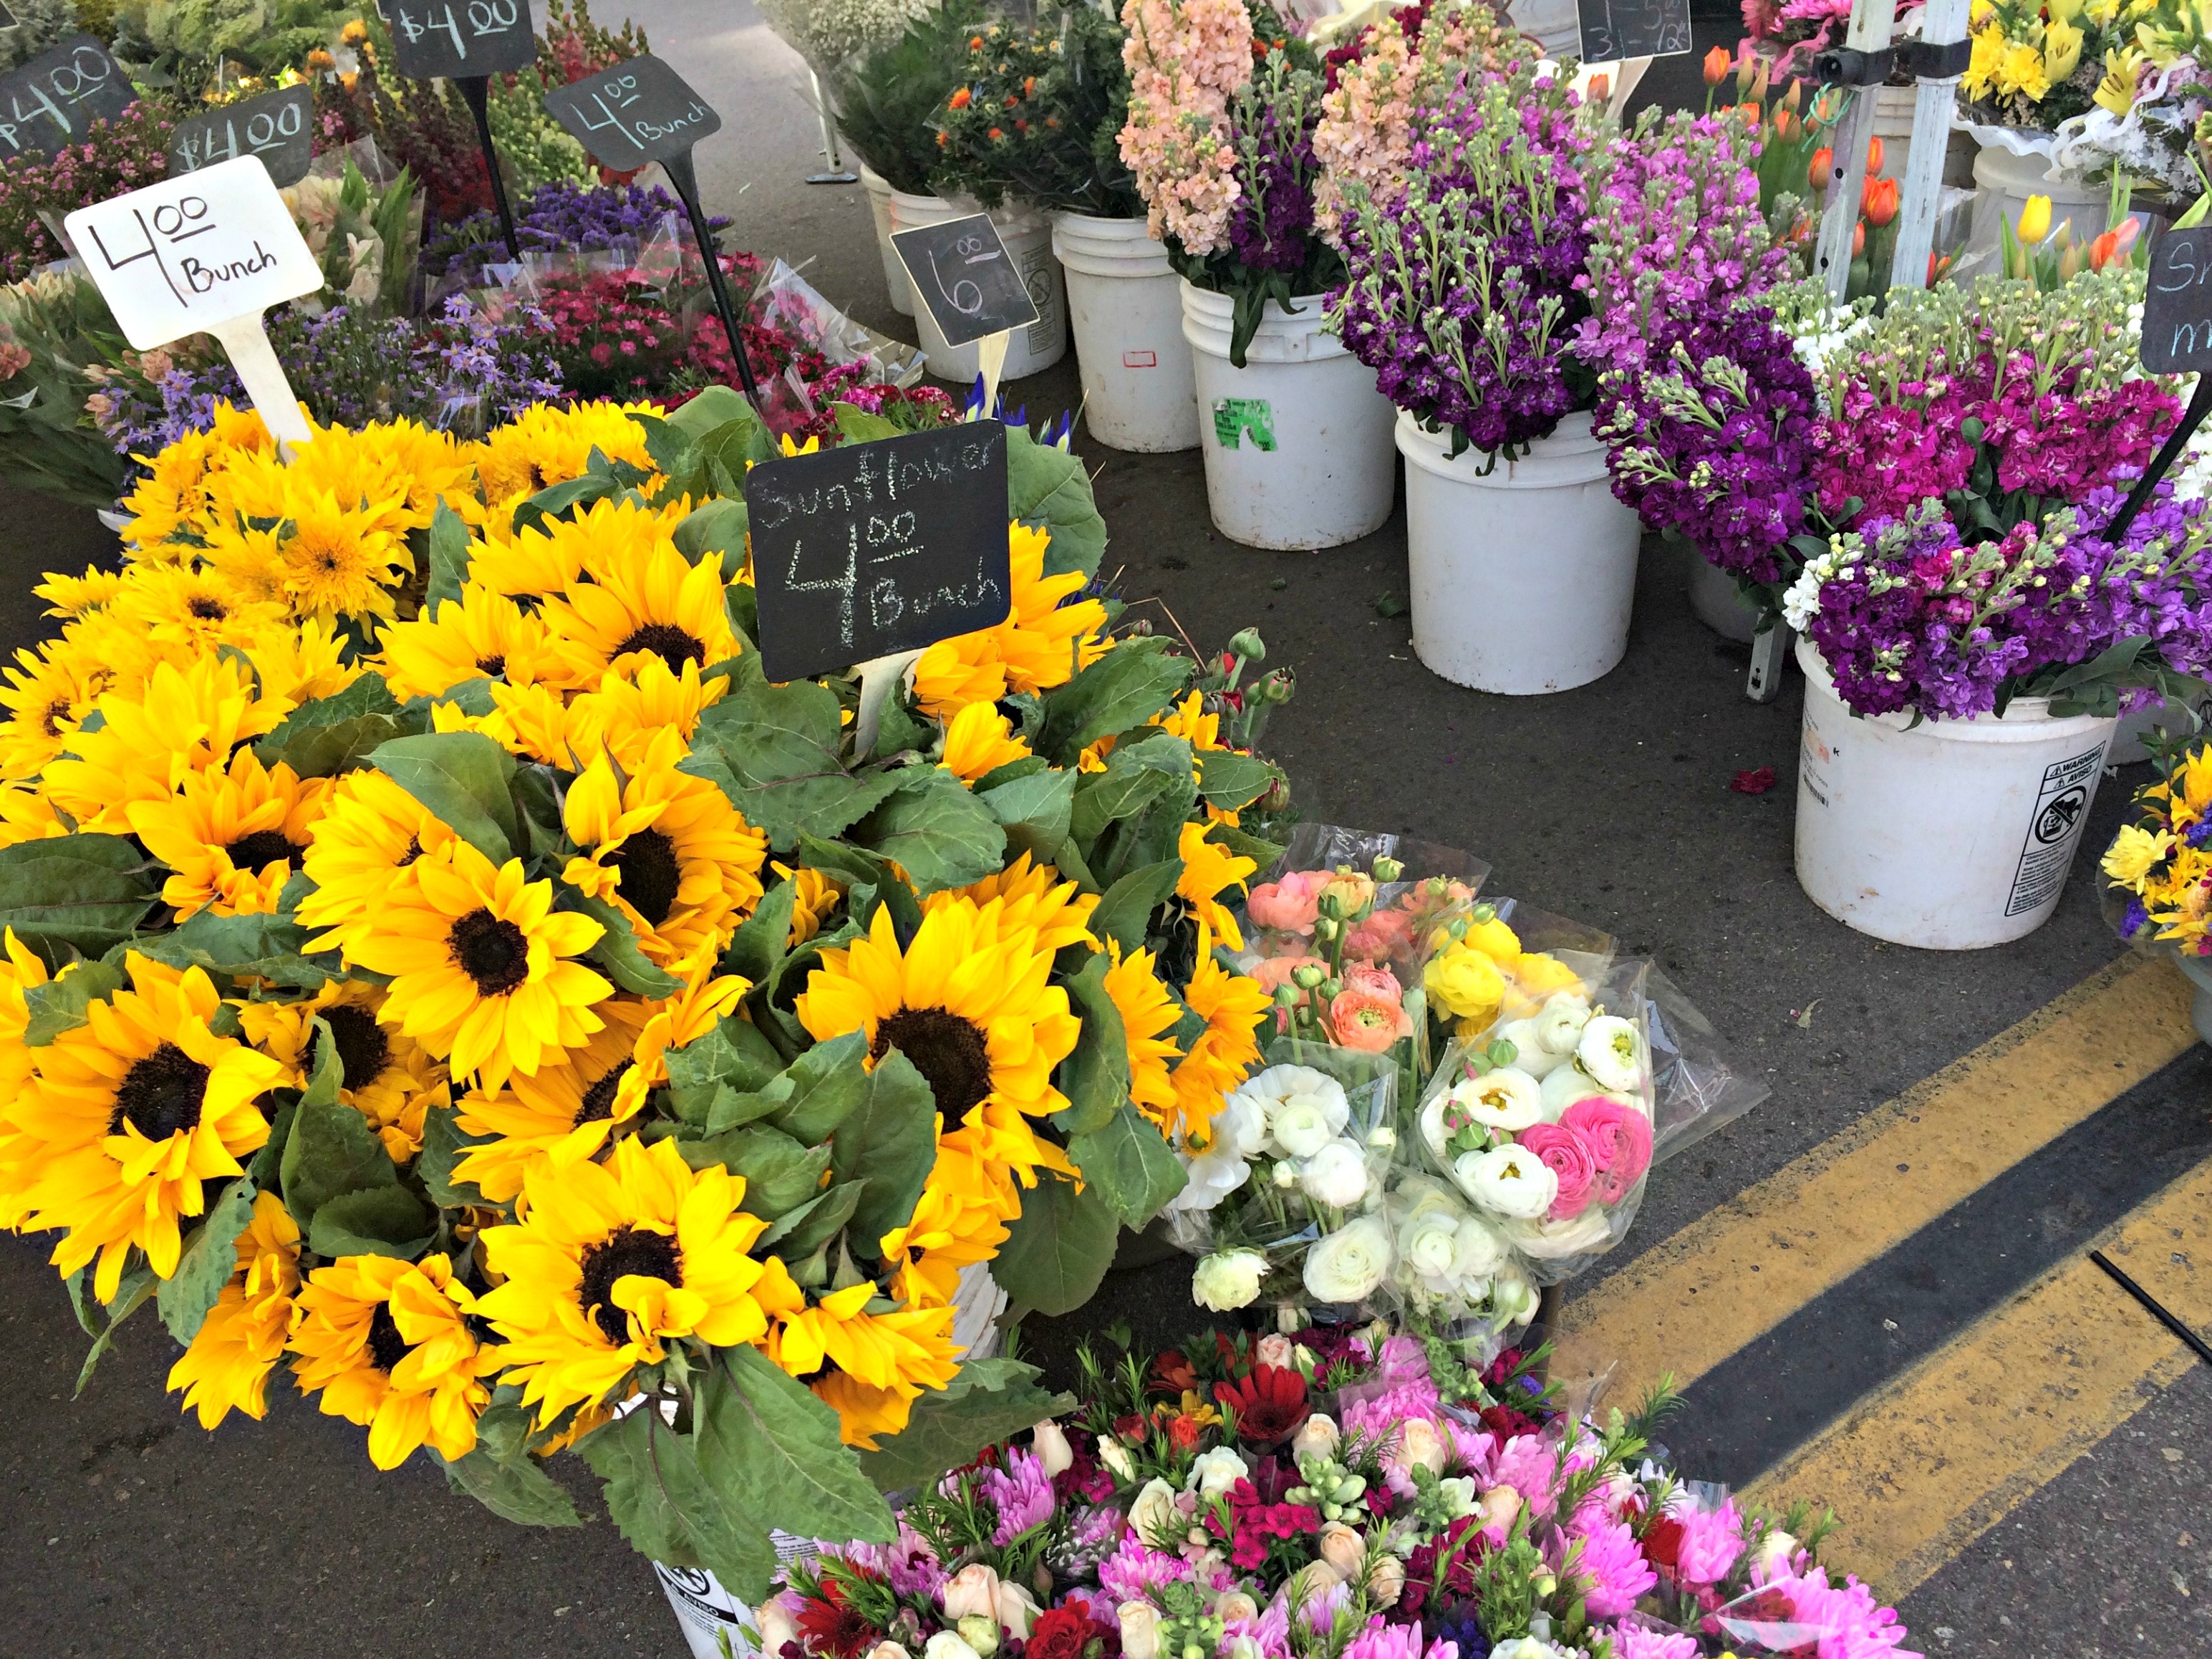 Little Italy Farmer's Market flowers